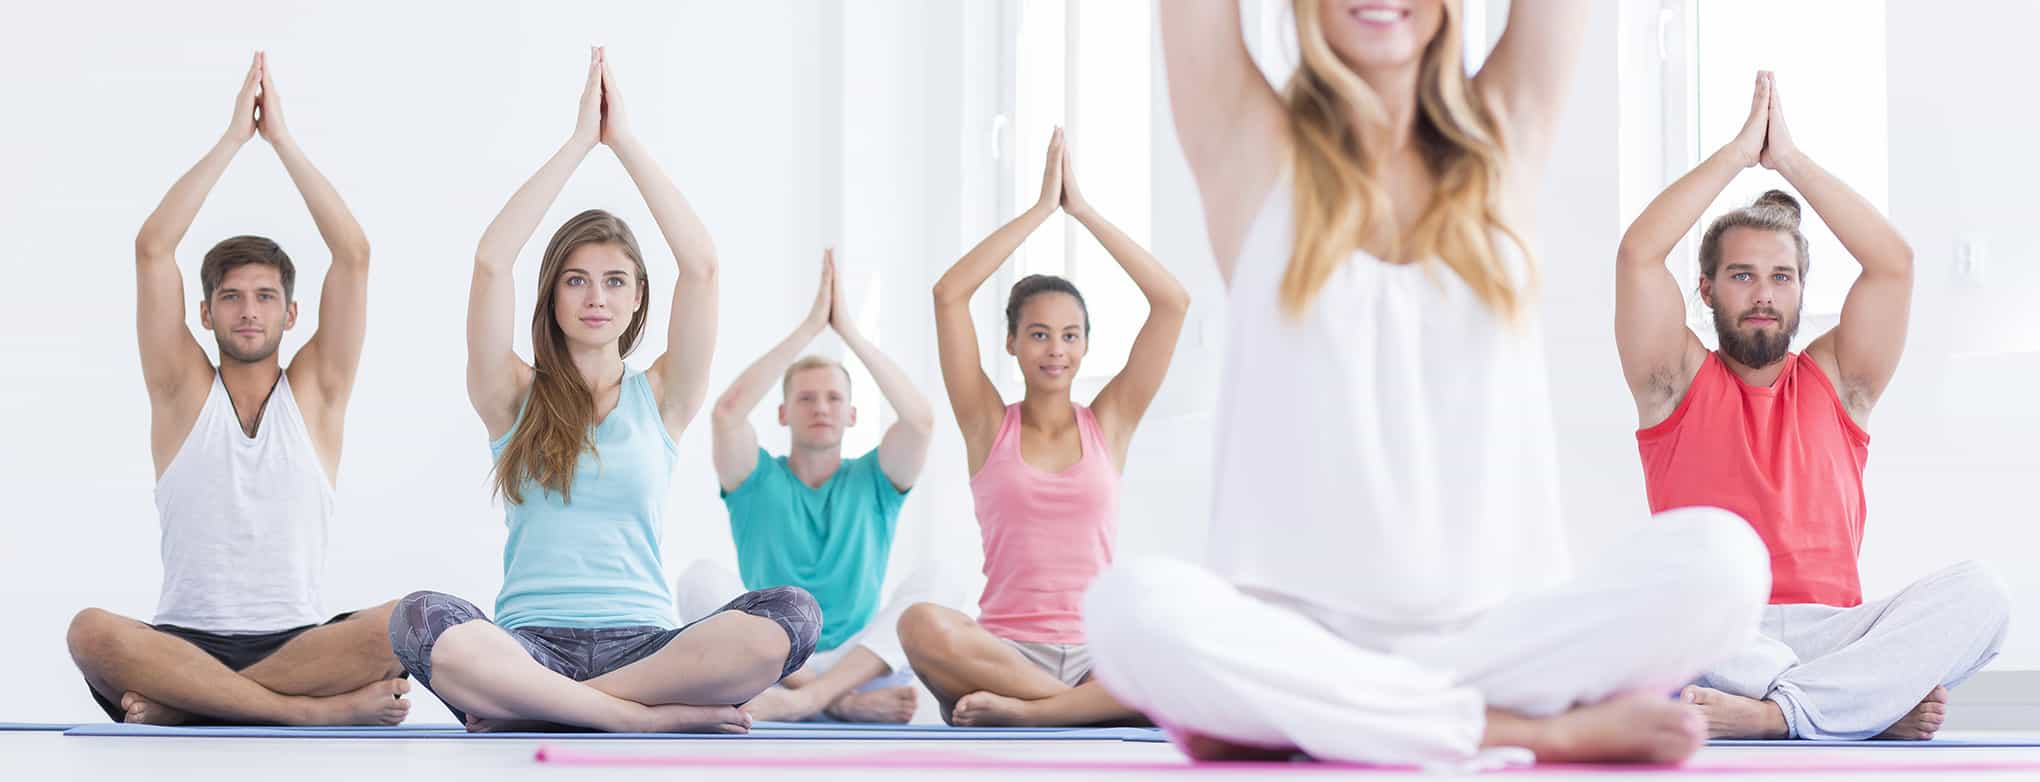 Focused people during yoga class looking at their instructor